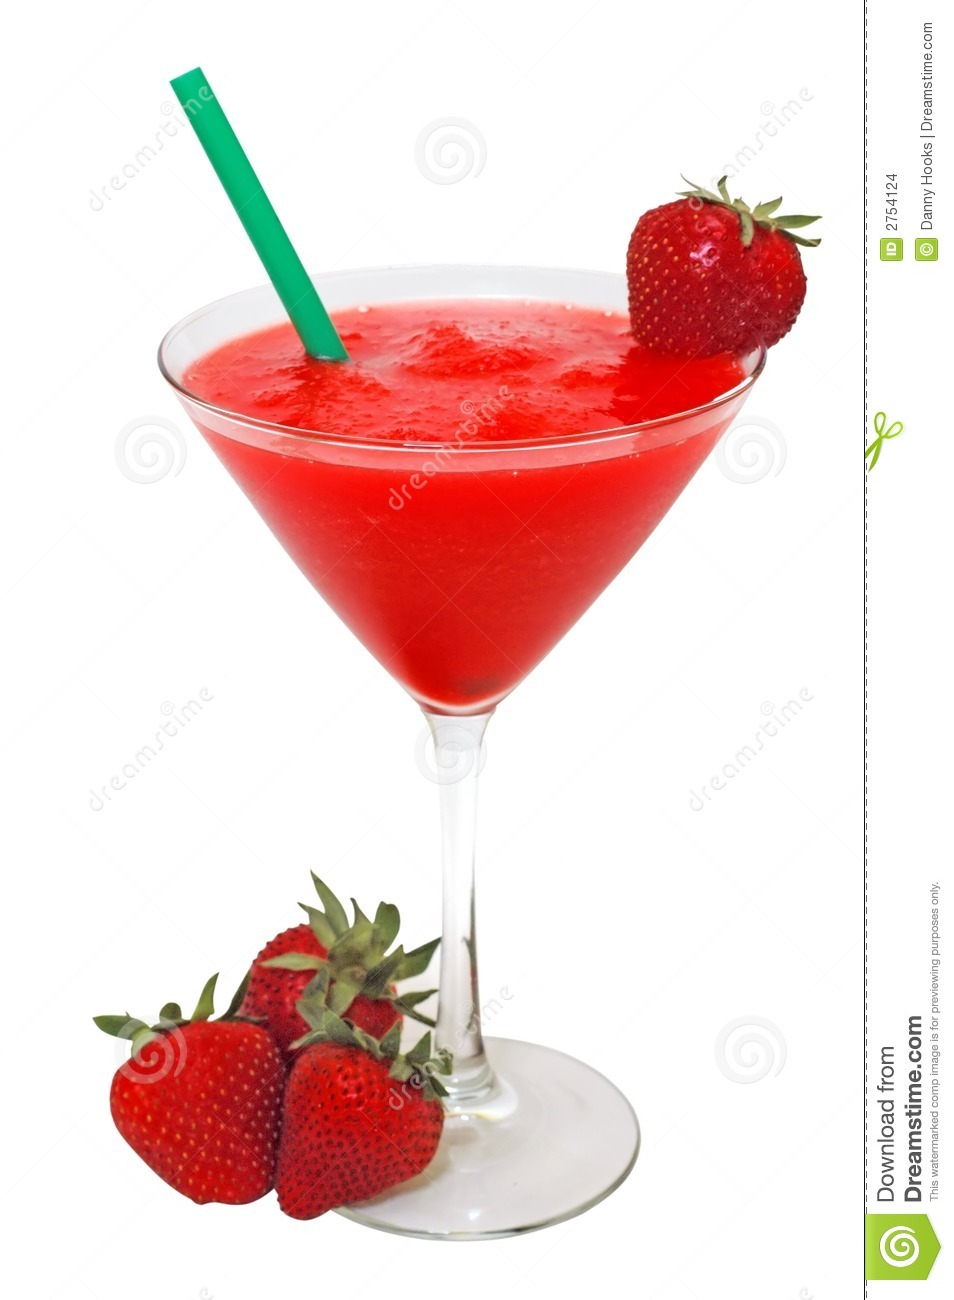 Strawberry Daiquiri And Strawberries Isolated Stock Images - Image ...